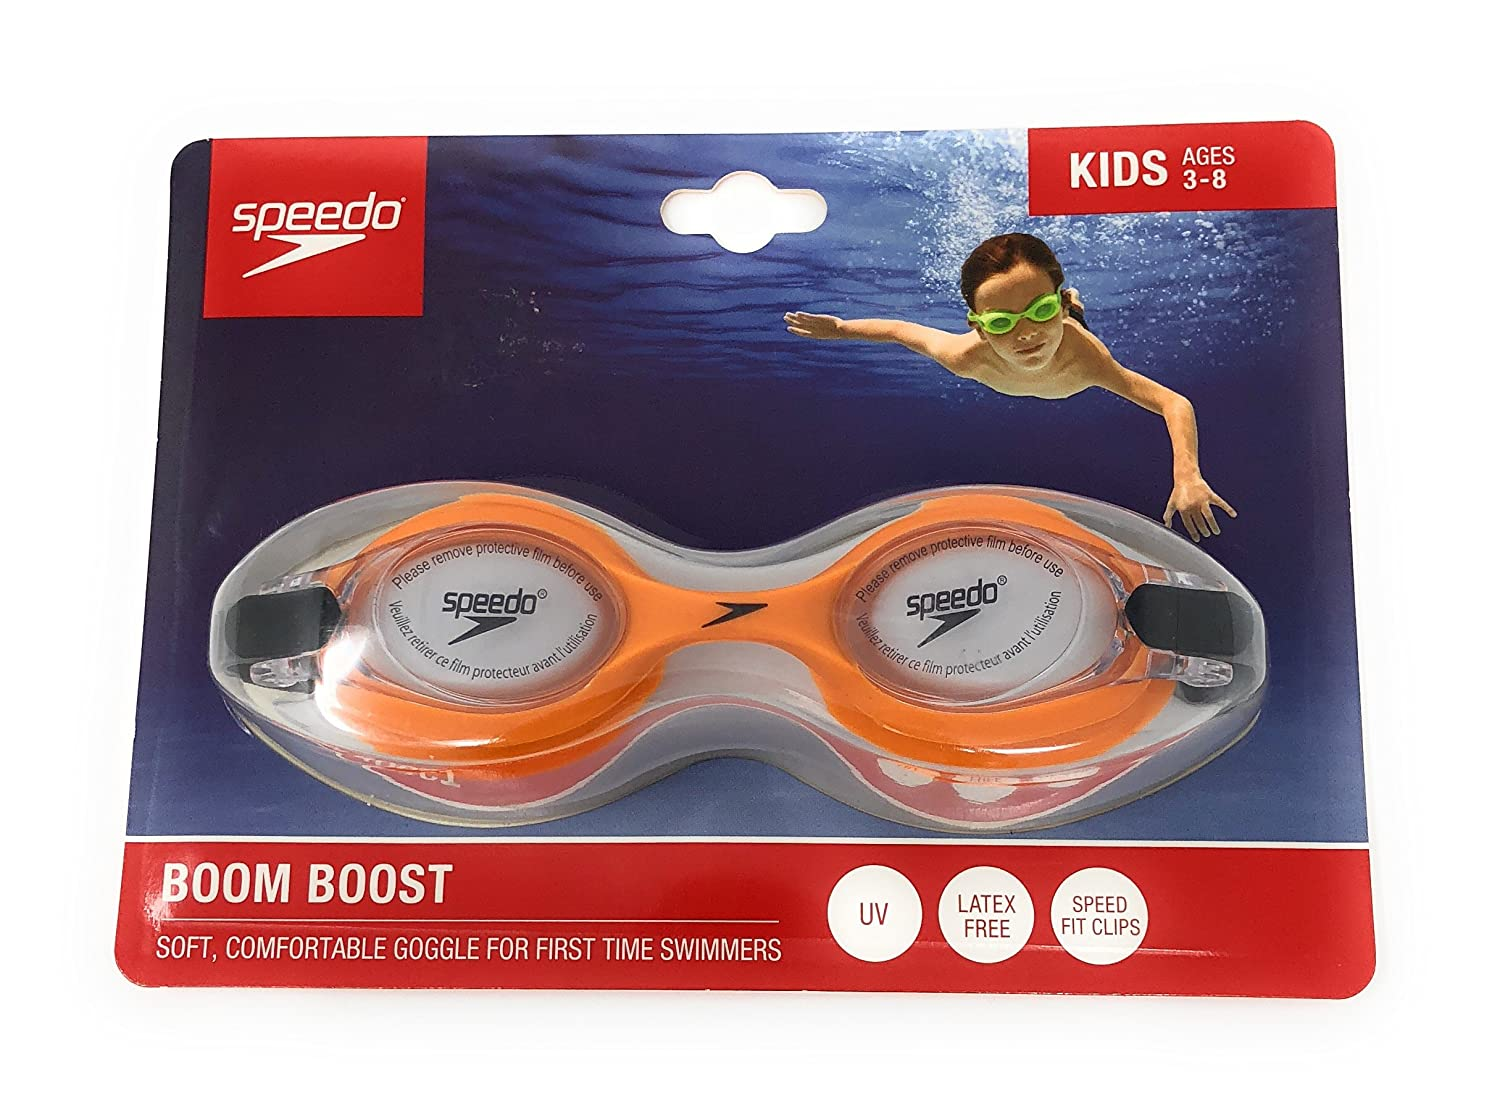 First-Time Swimmers Ages 3-8 Speedo KIDS Swim Goggles Orange